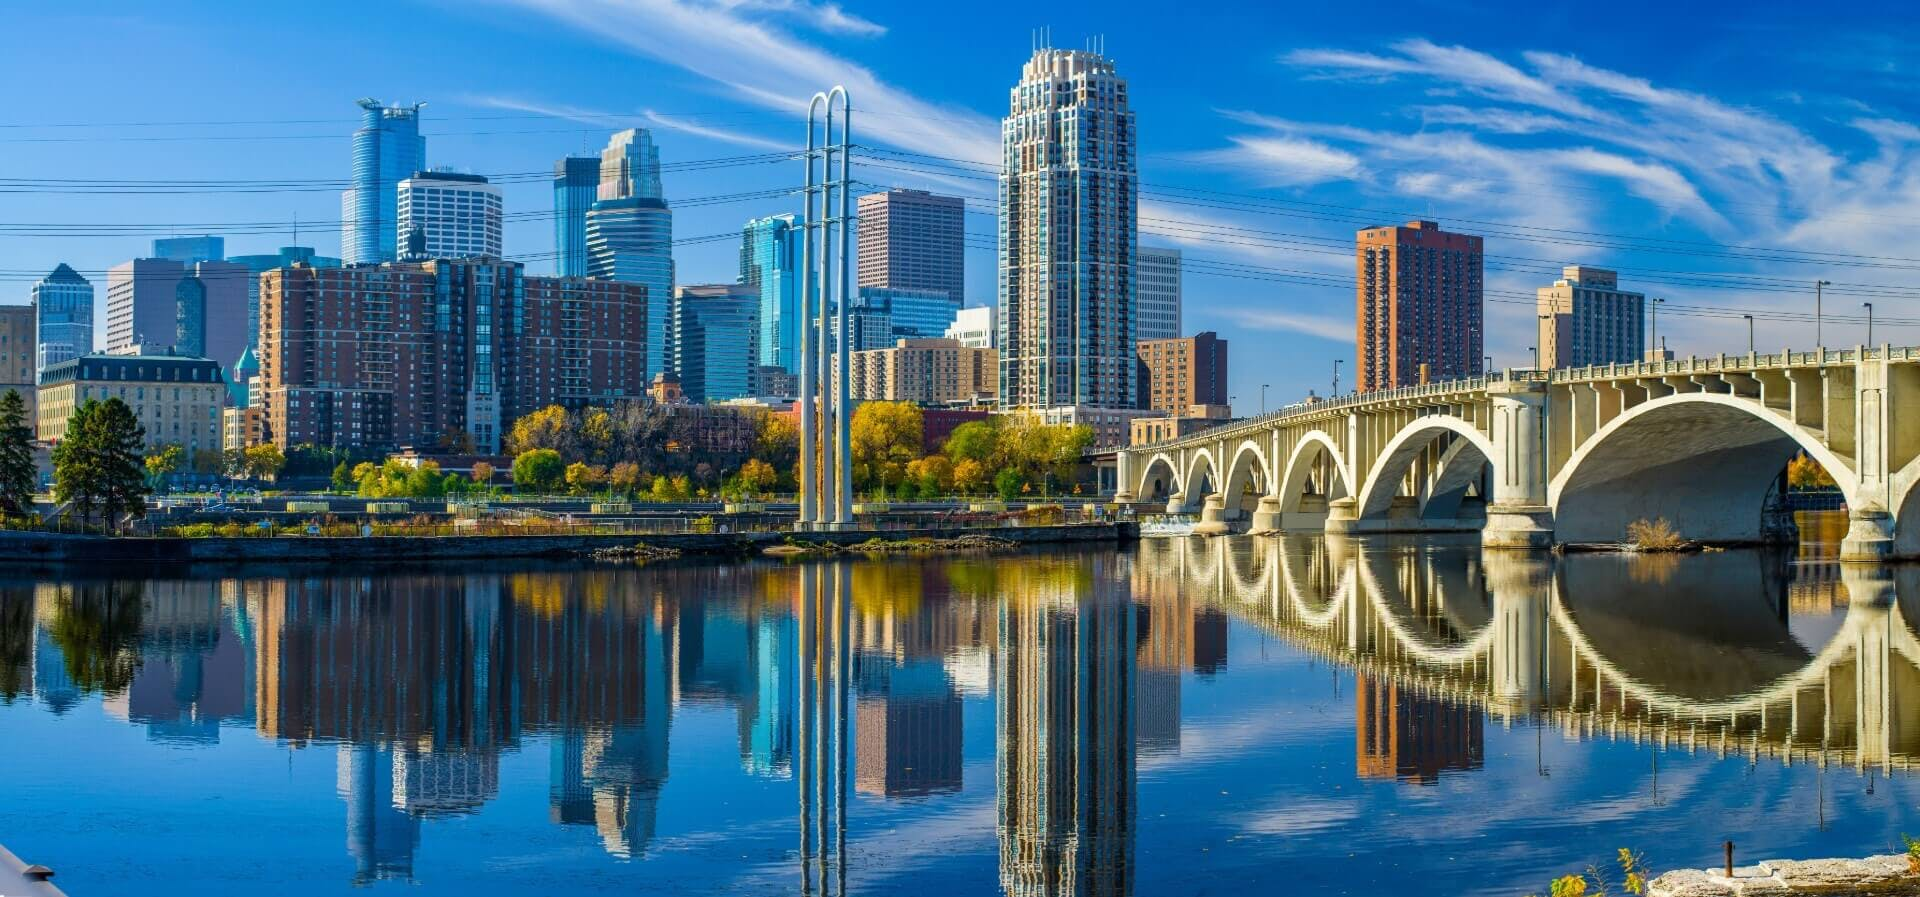 Minneapolis Liposuction Options and Alternatives: What You Should Know